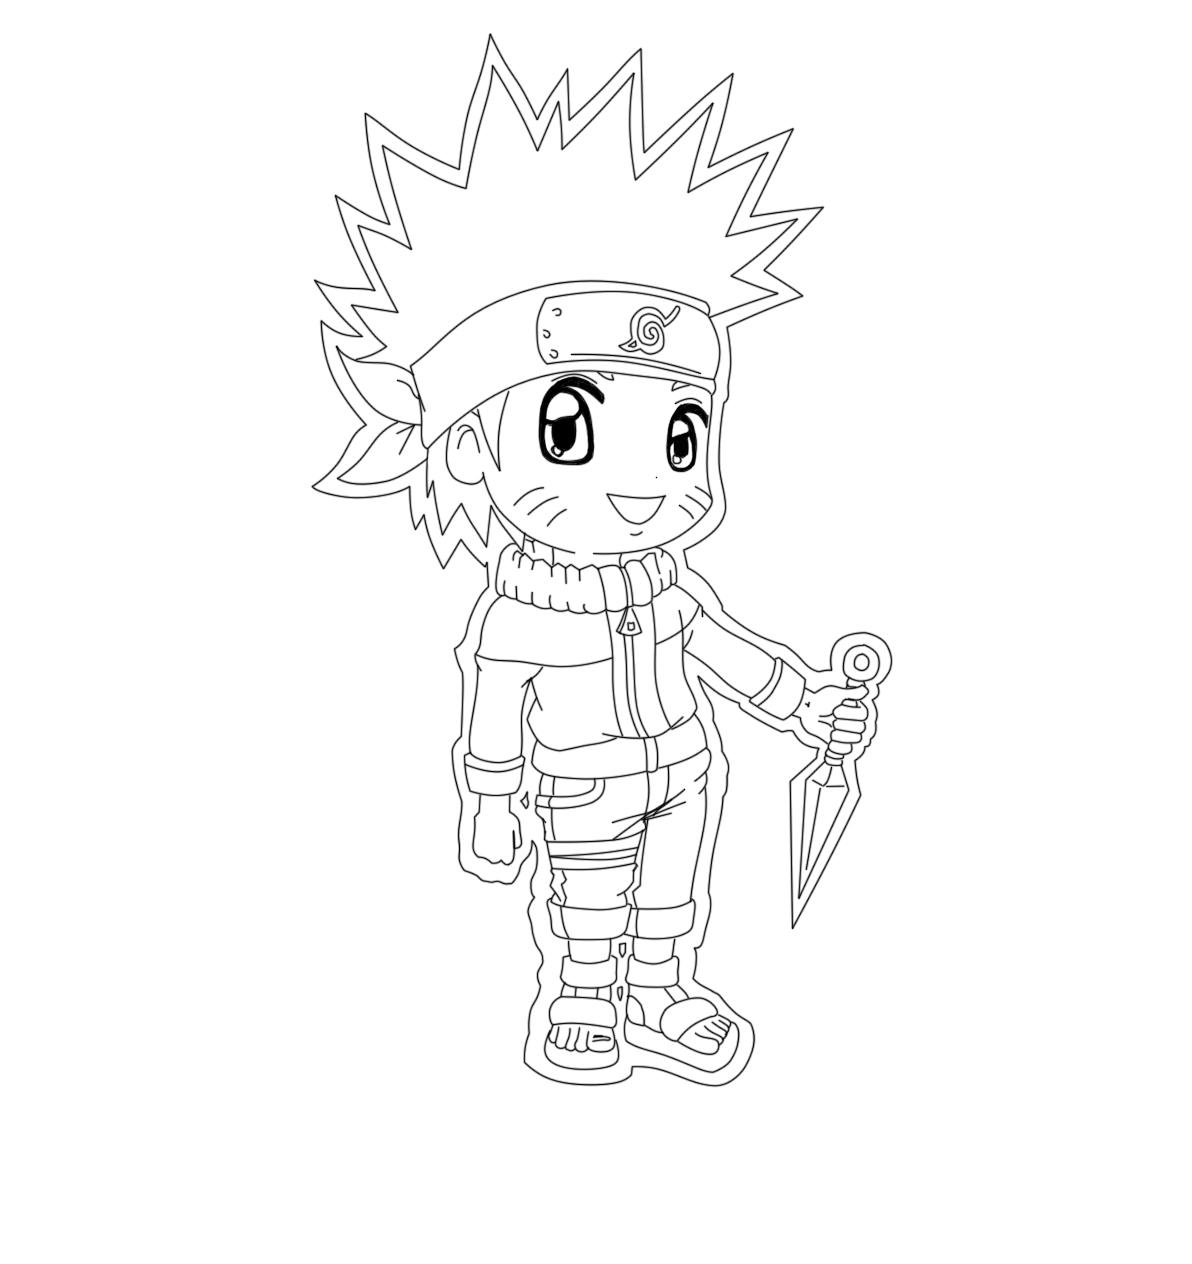 Naruto the way of naruto chibi lineart naruto de - Naruto coloriage en ligne ...